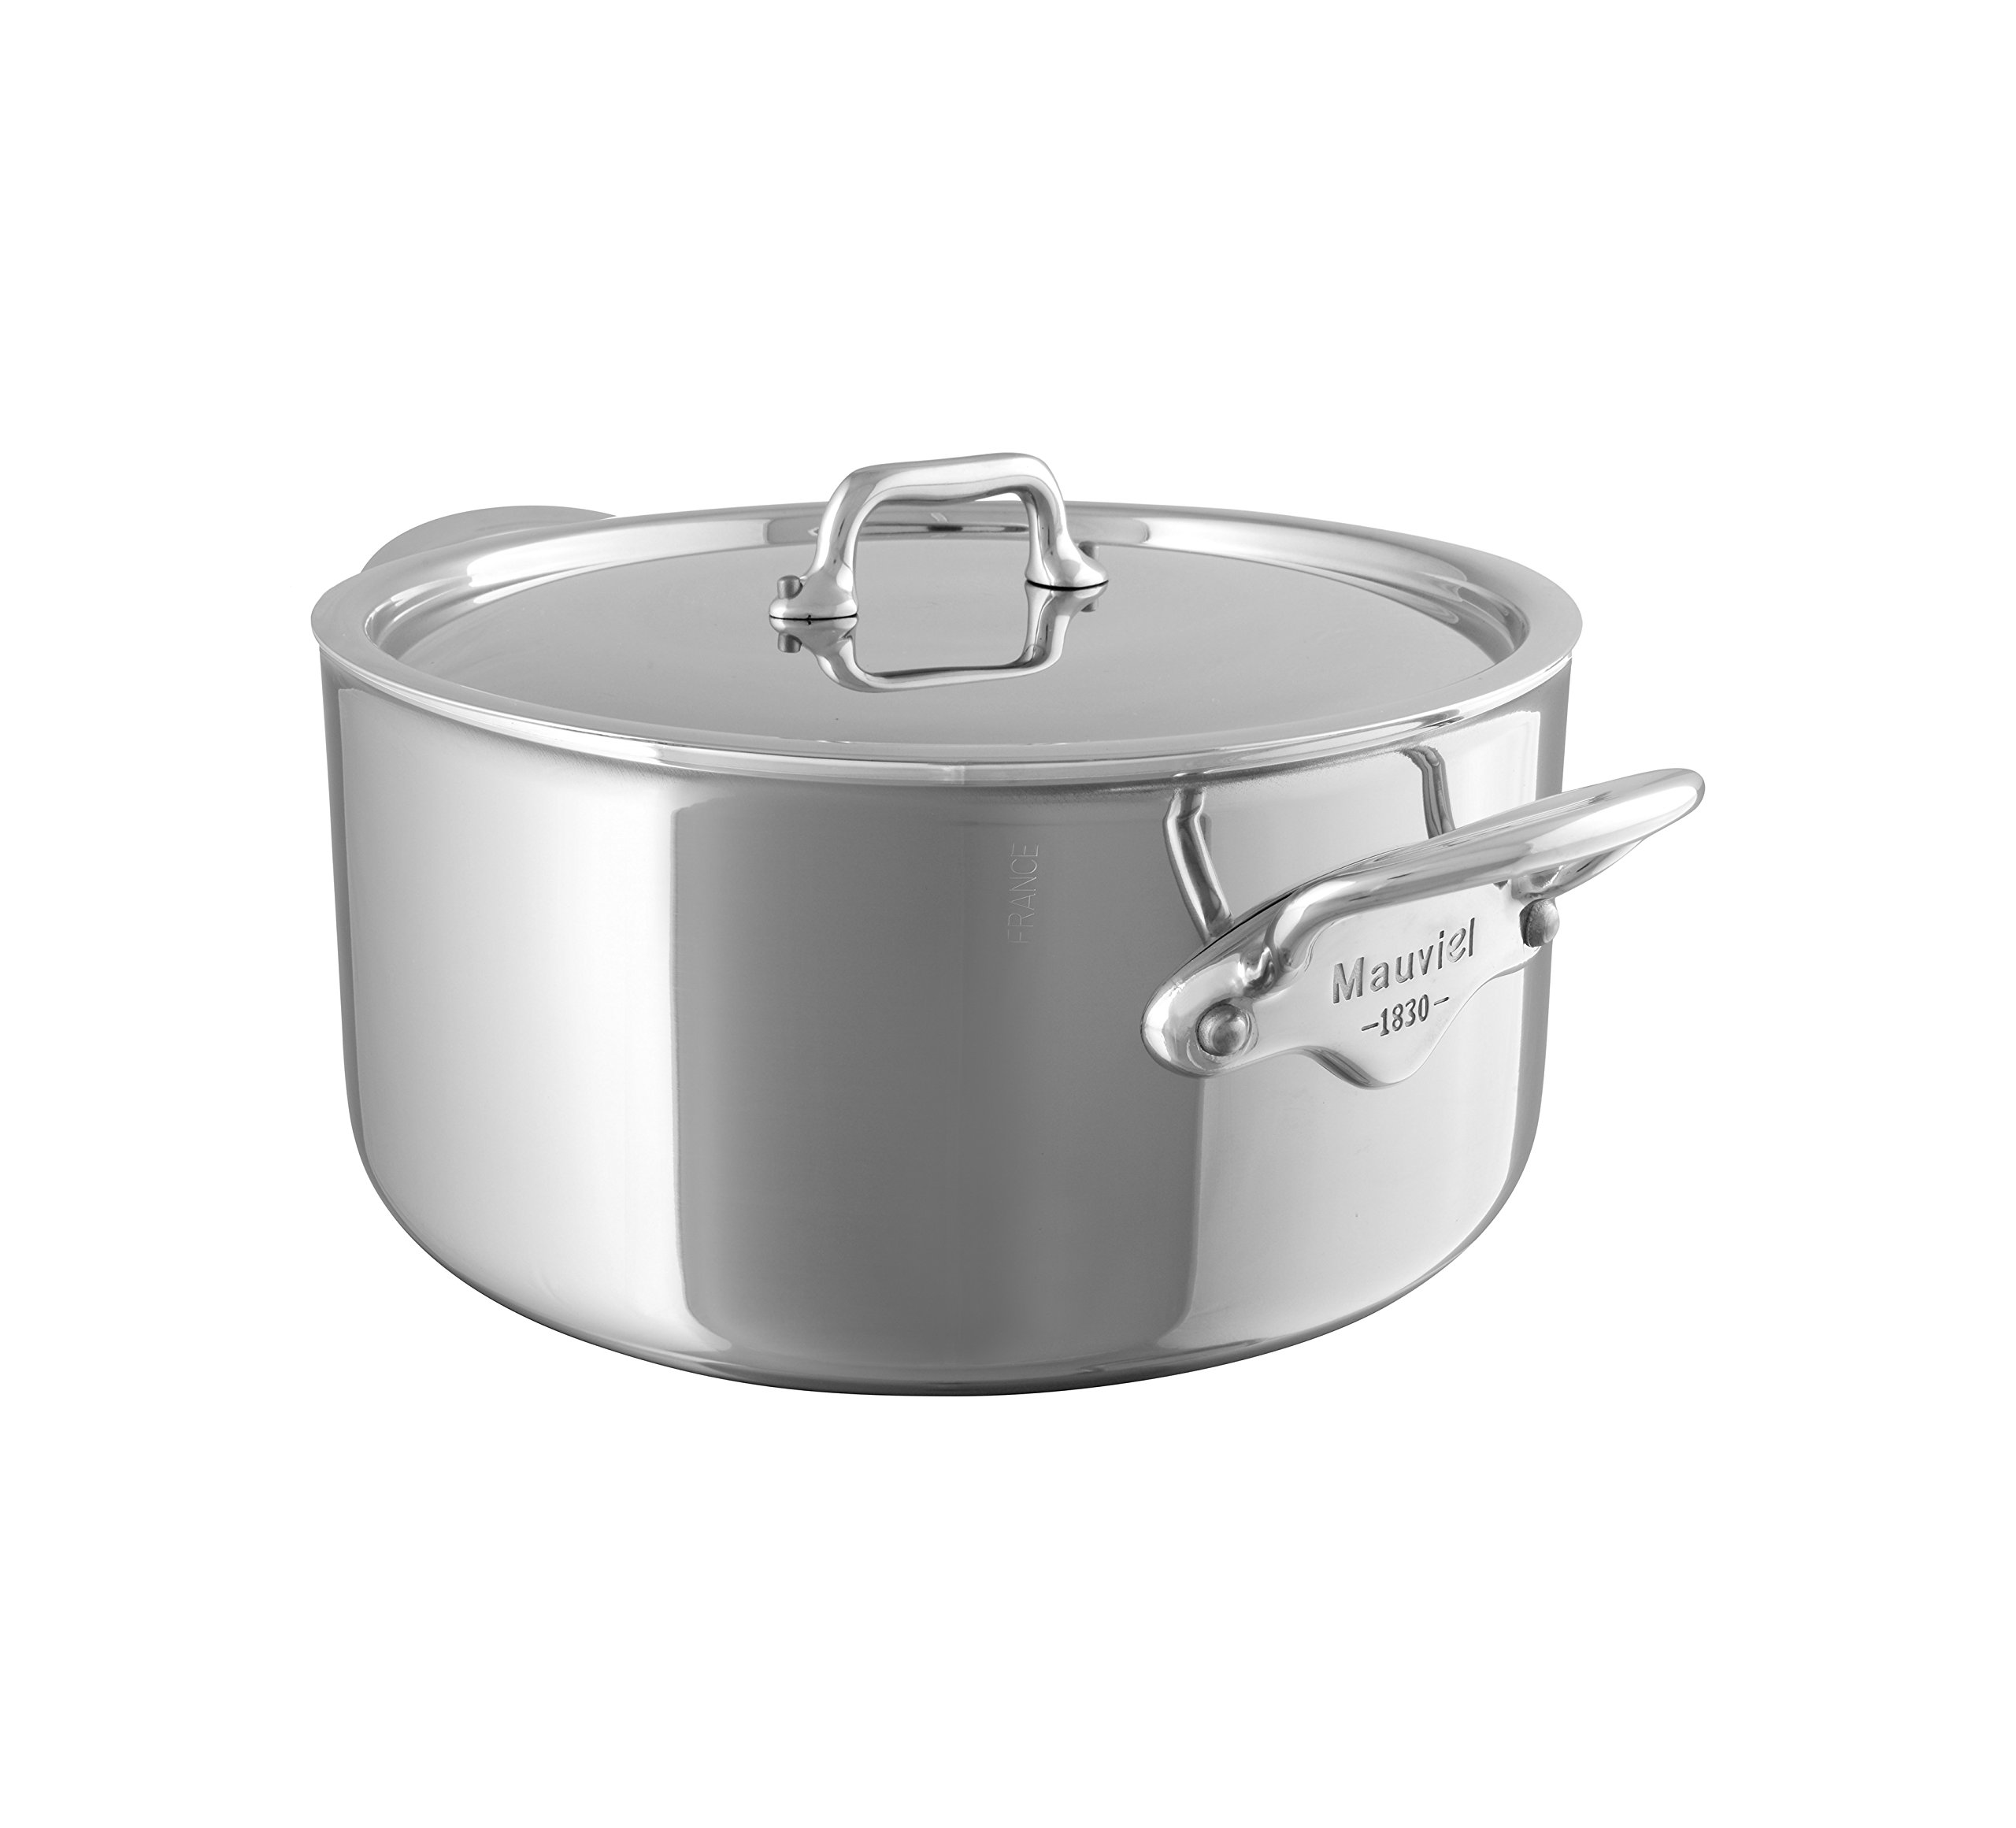 Mauviel Made In France M'Cook 5 Ply Stainless Steel 5231.25 6.4-Quart Stewpan with Lid, Cast Stainless Steel Handle